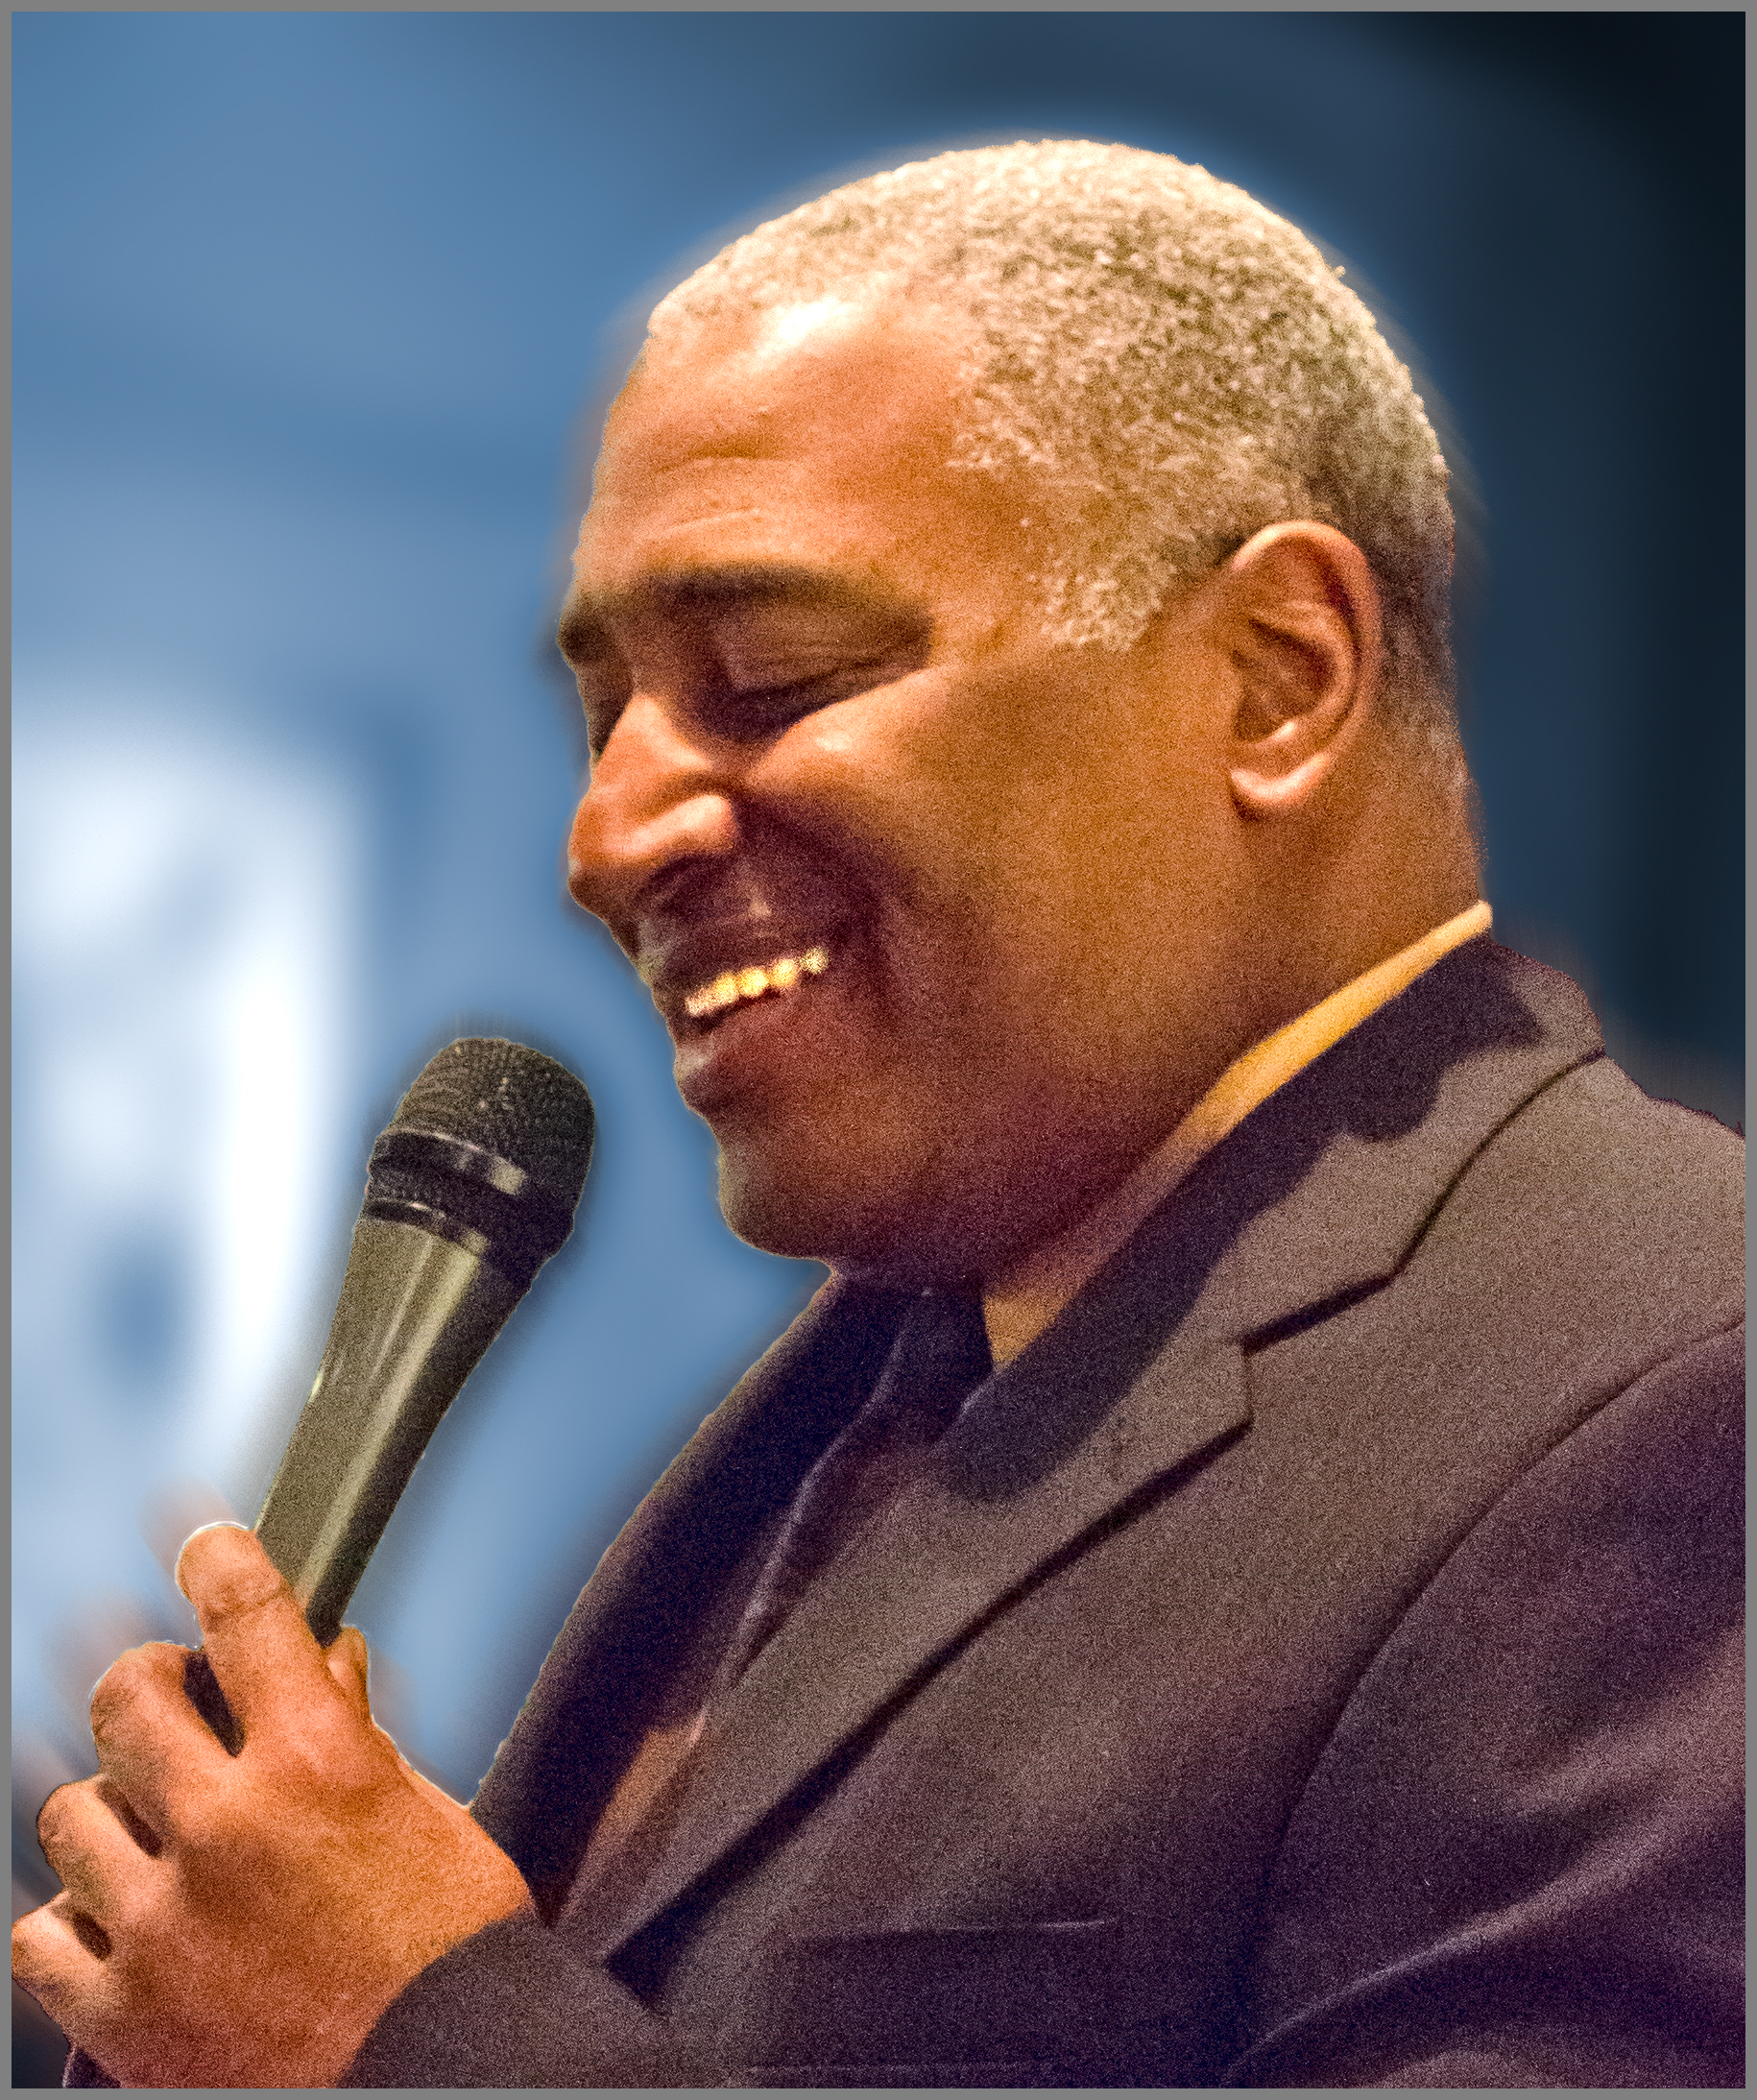 ROBERT JOHNSON ,  Vocalist   Robert is currently touring with Met Opera soprano Angela Brown performing duo jazz/opera concerts of Porgy and Bess. He has toured extensively with Stevie Wonder, Michael Jackson, and Lionel Ritchie.